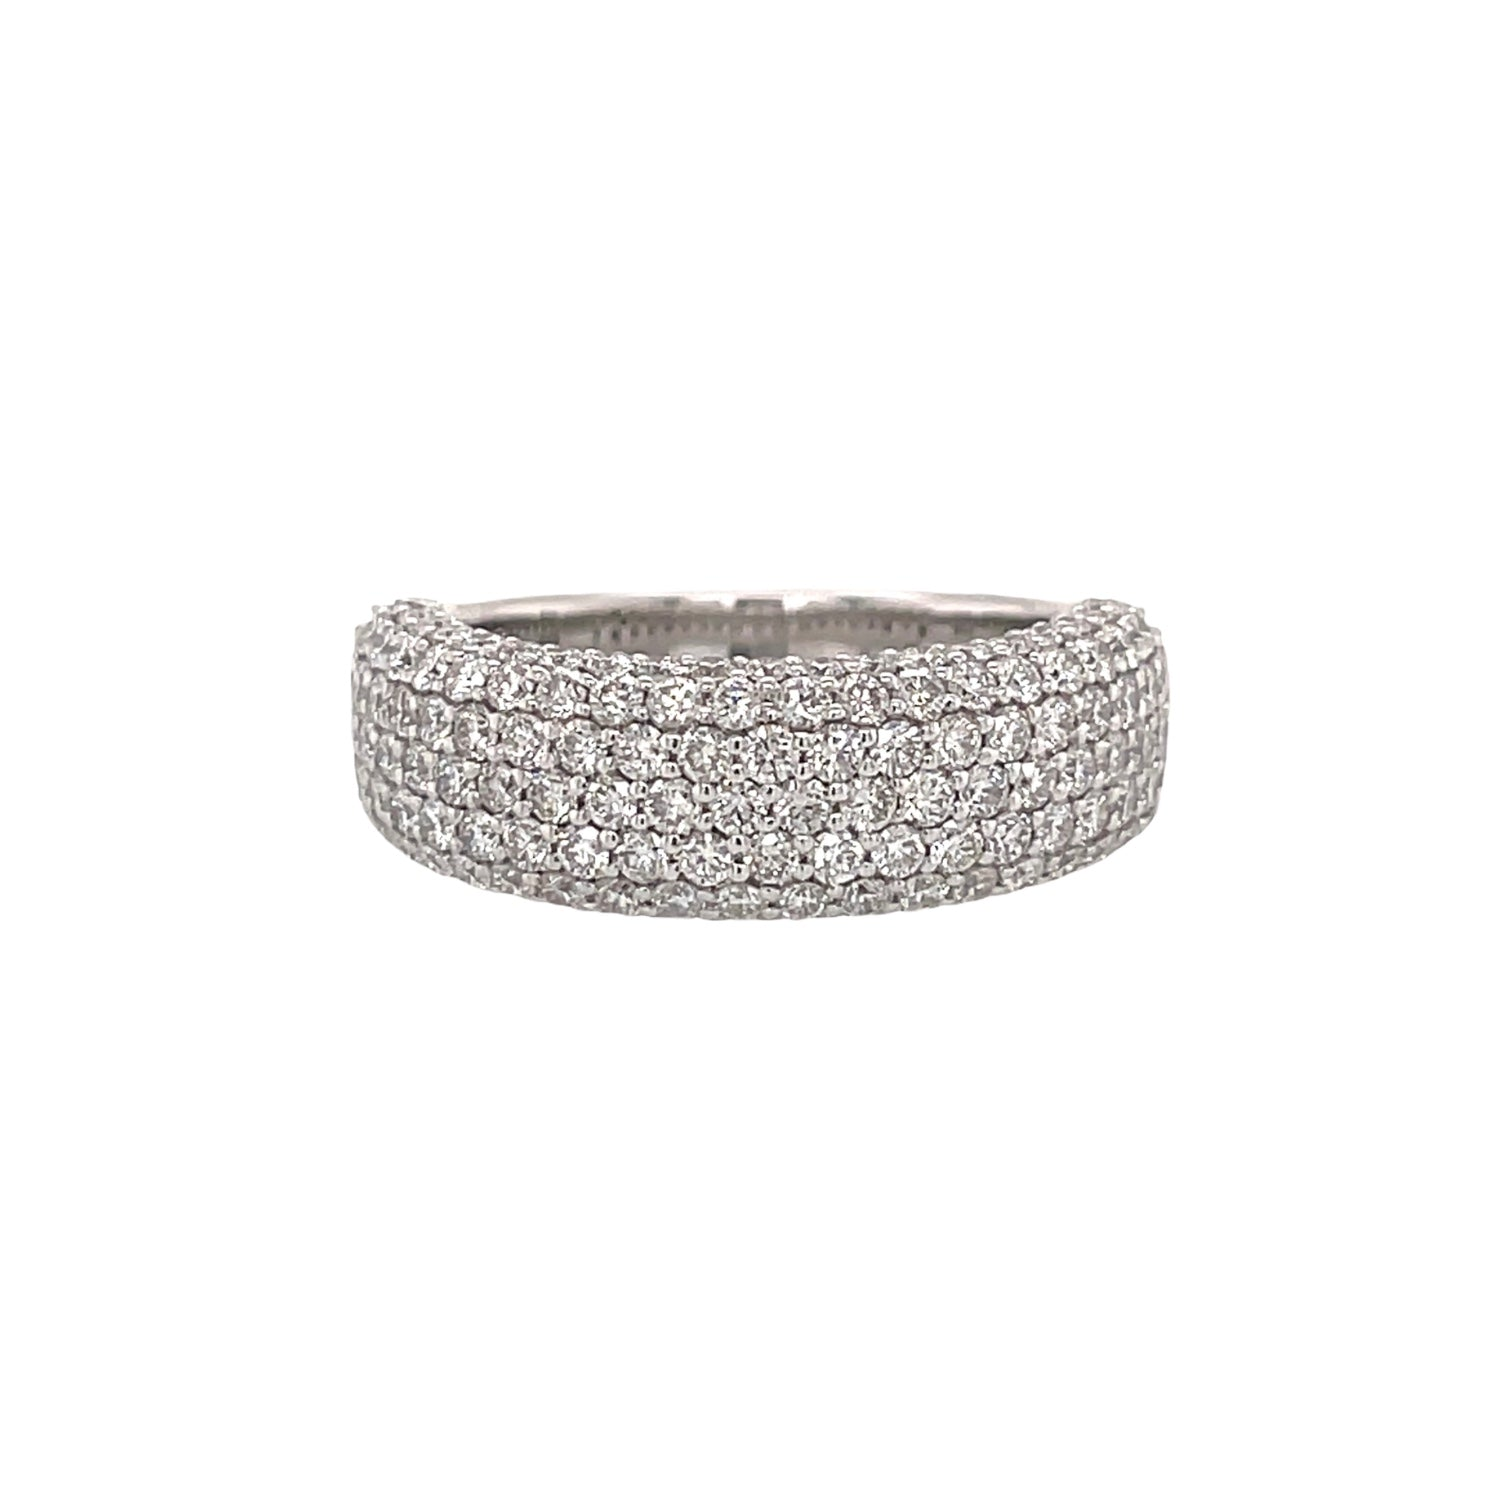 7 Row Round Diamond Ring